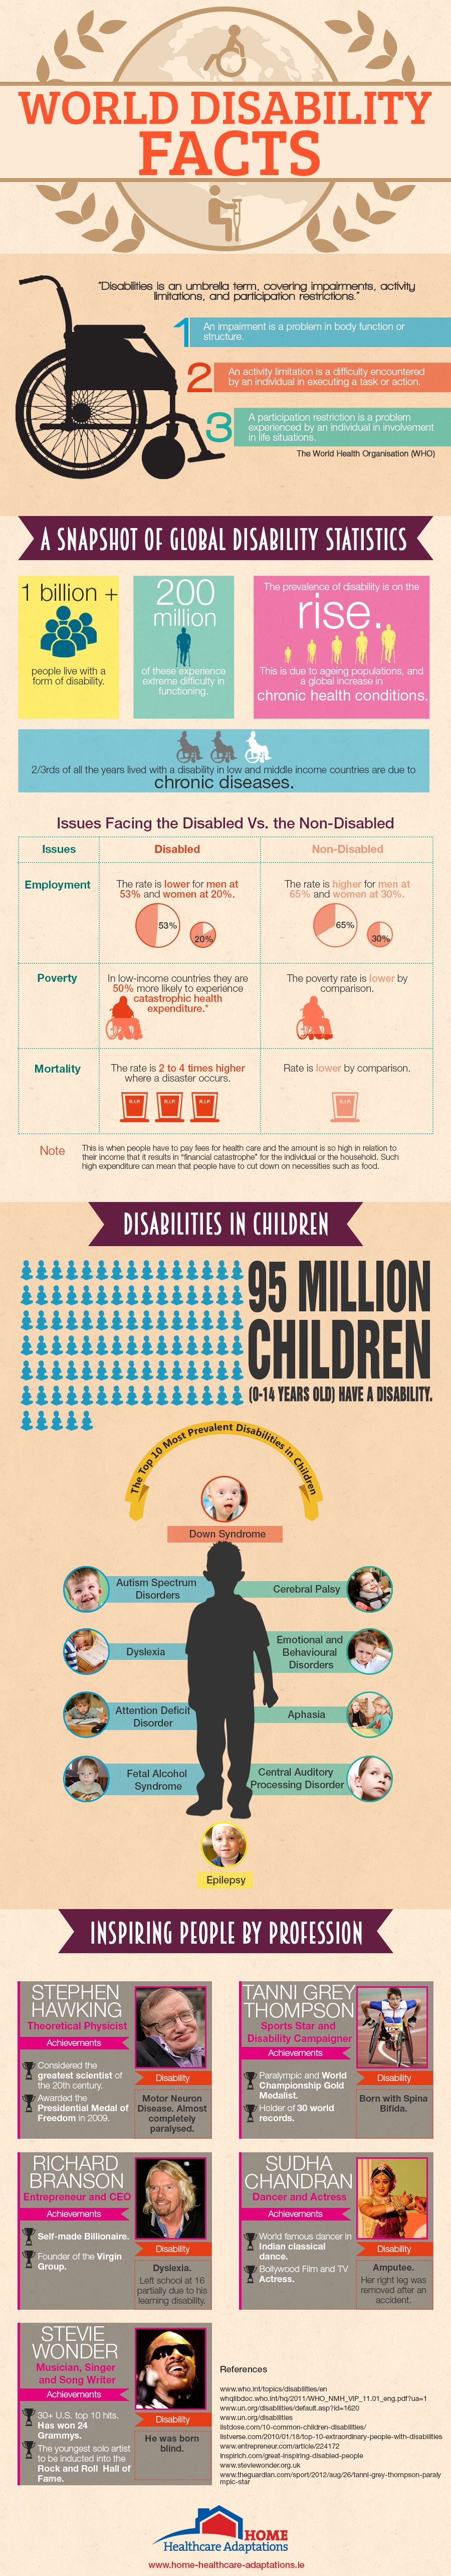 World-Disability-Facts-Infographic